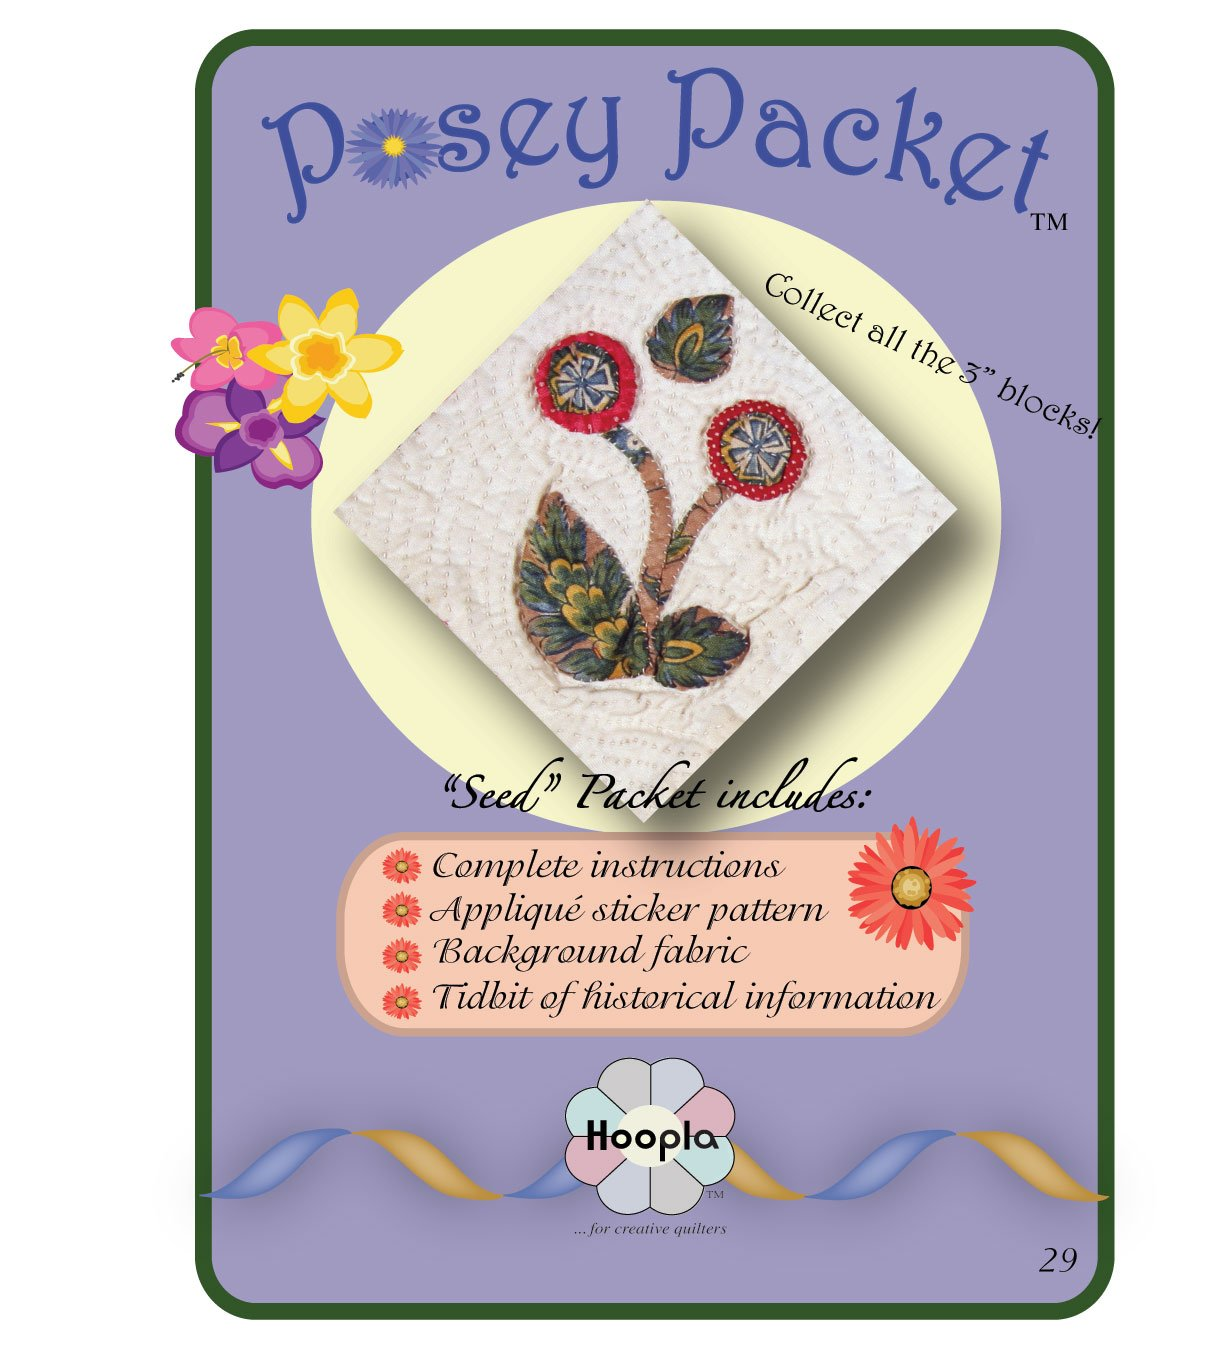 Posey Packet 29